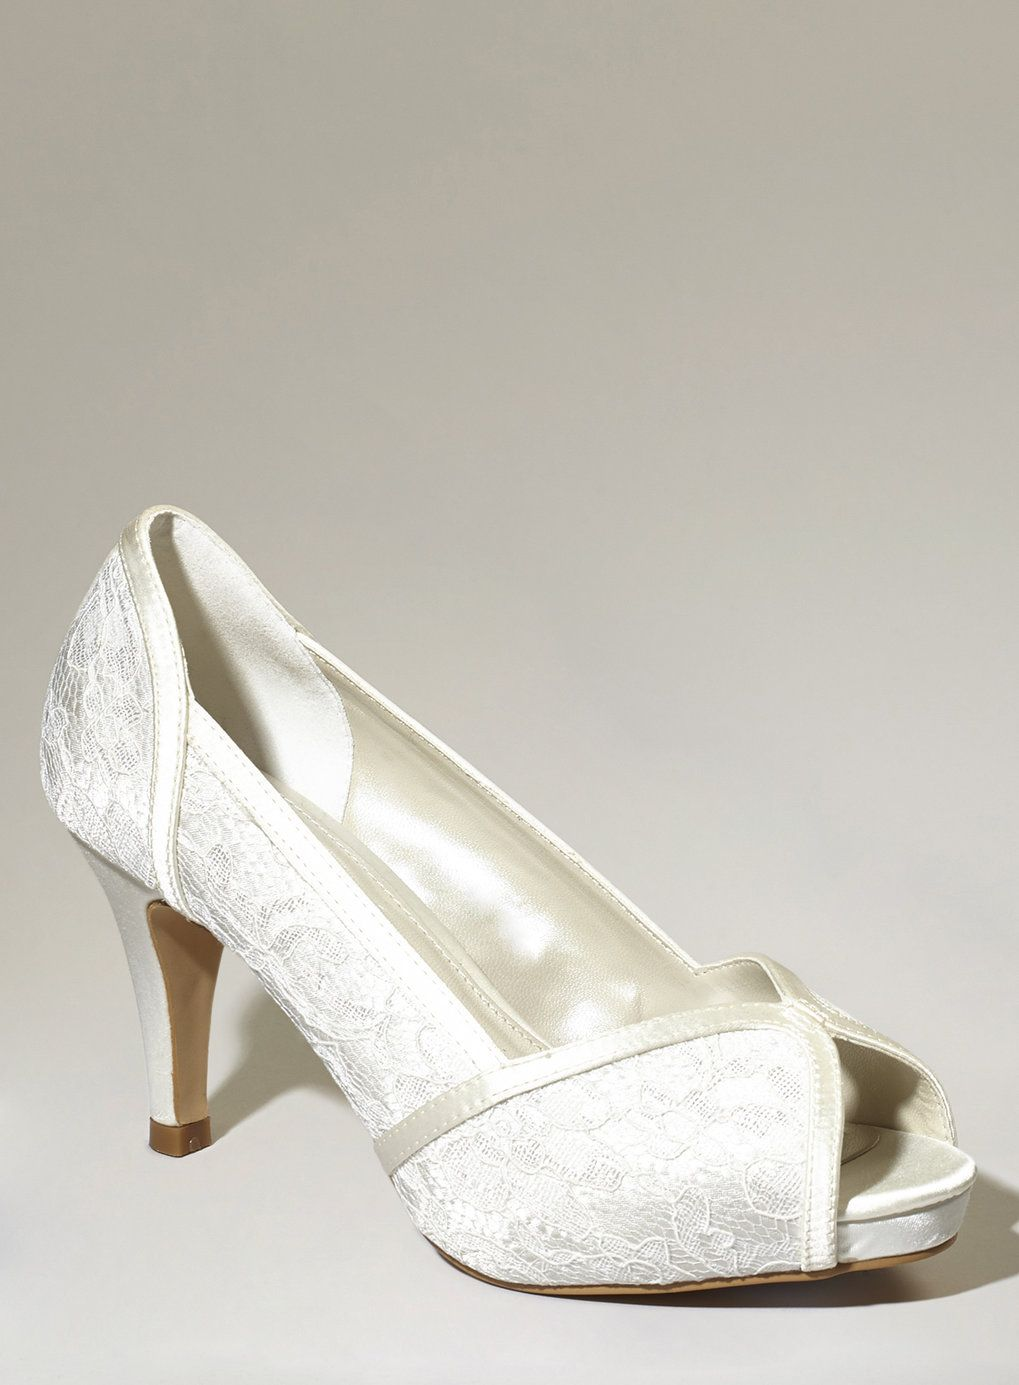 Bhs Wedding Collection Shoes